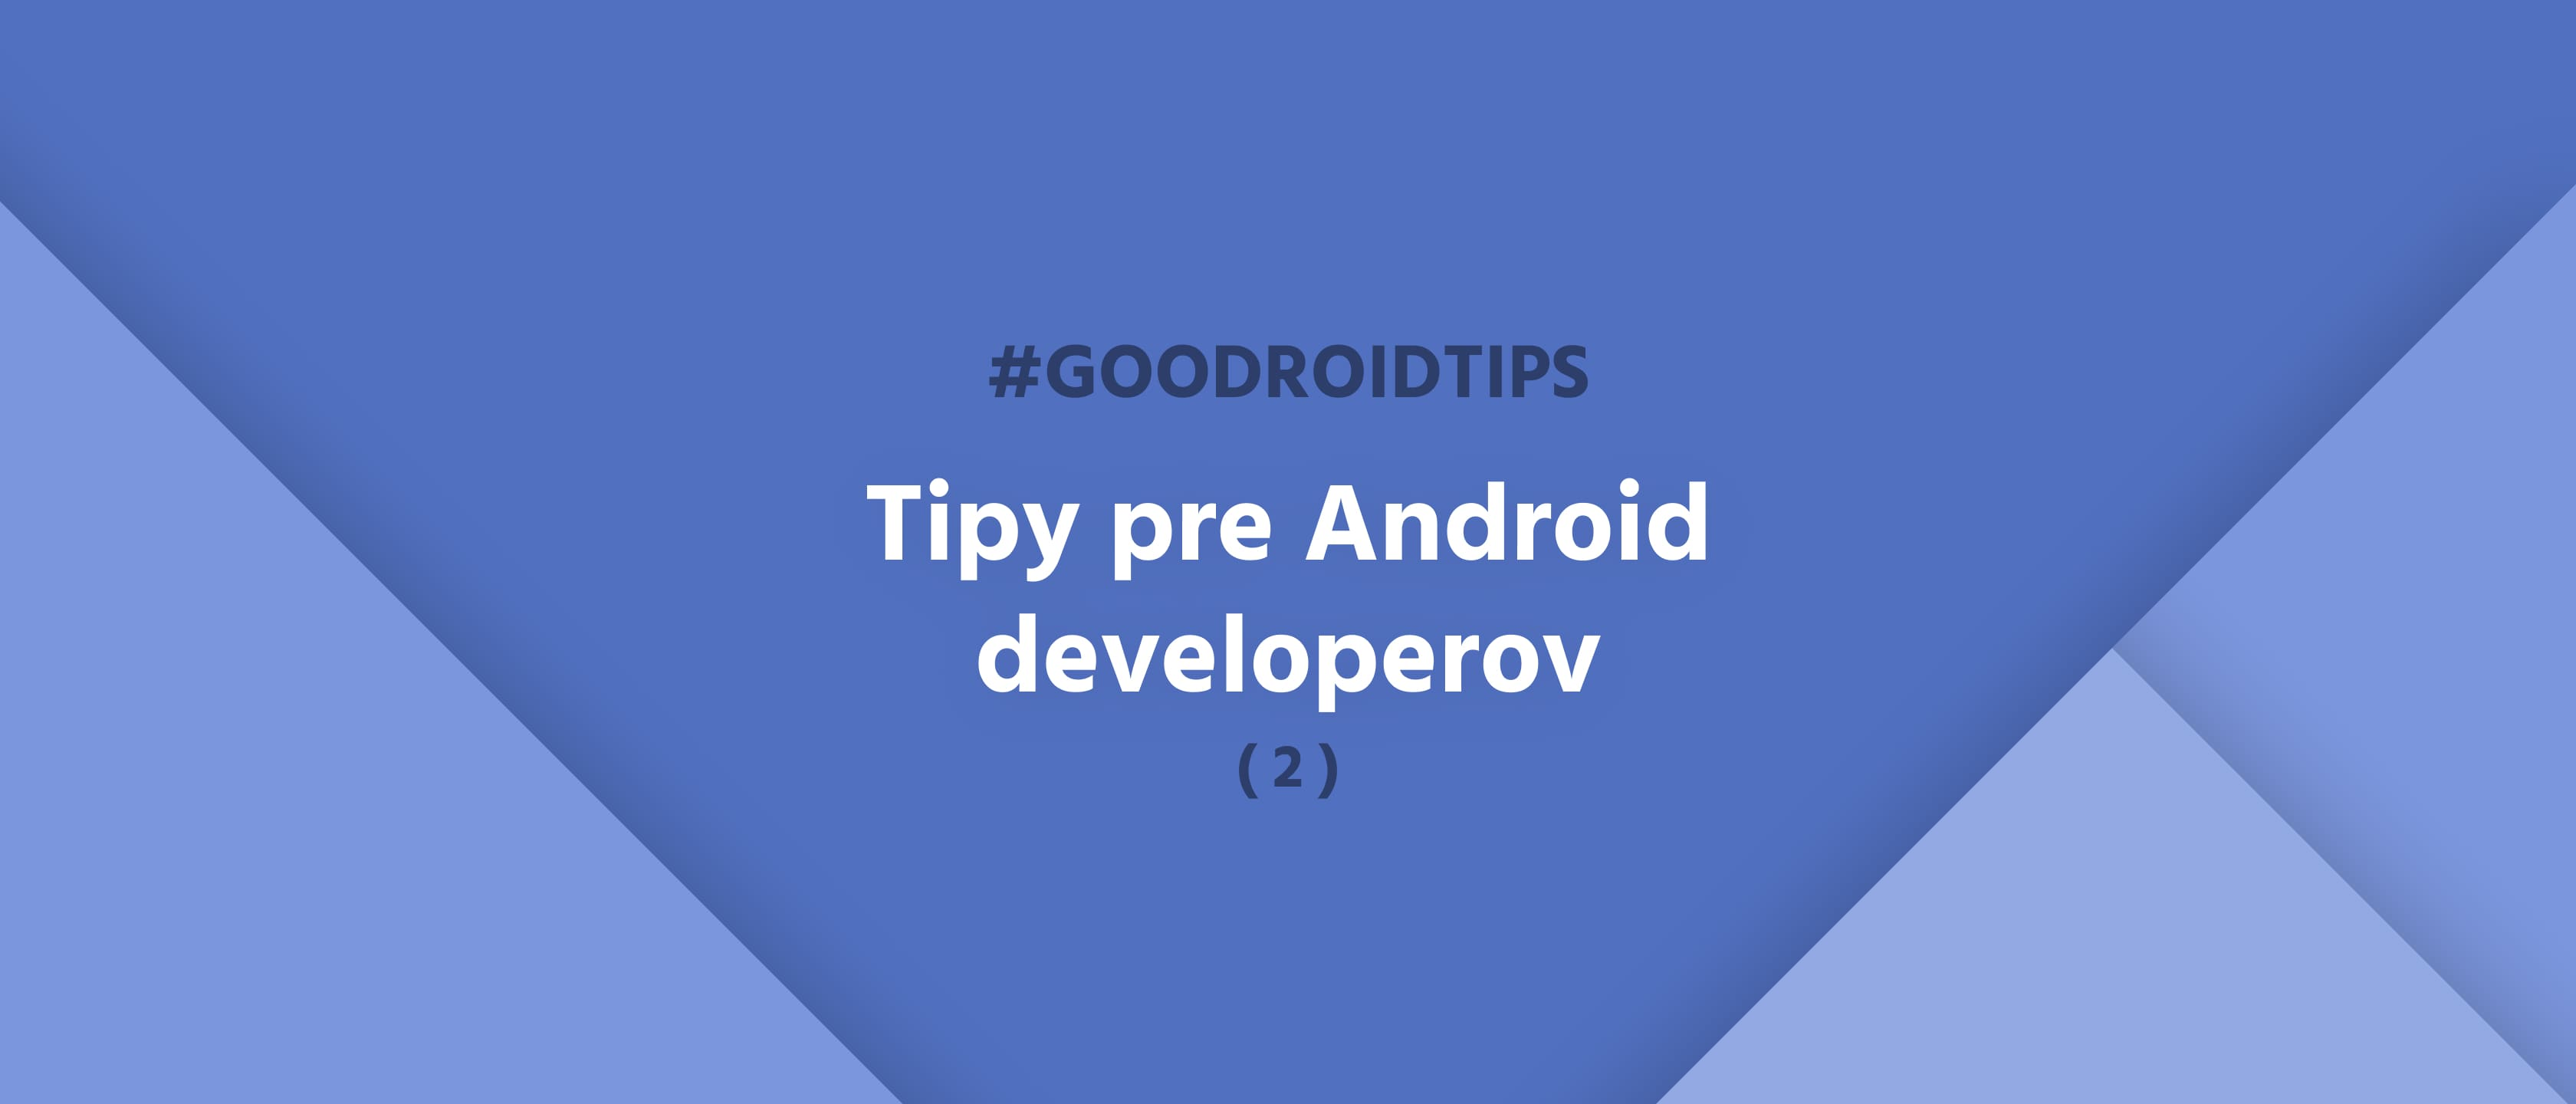 #goodroidtips II. - Tipy pre Android developerov